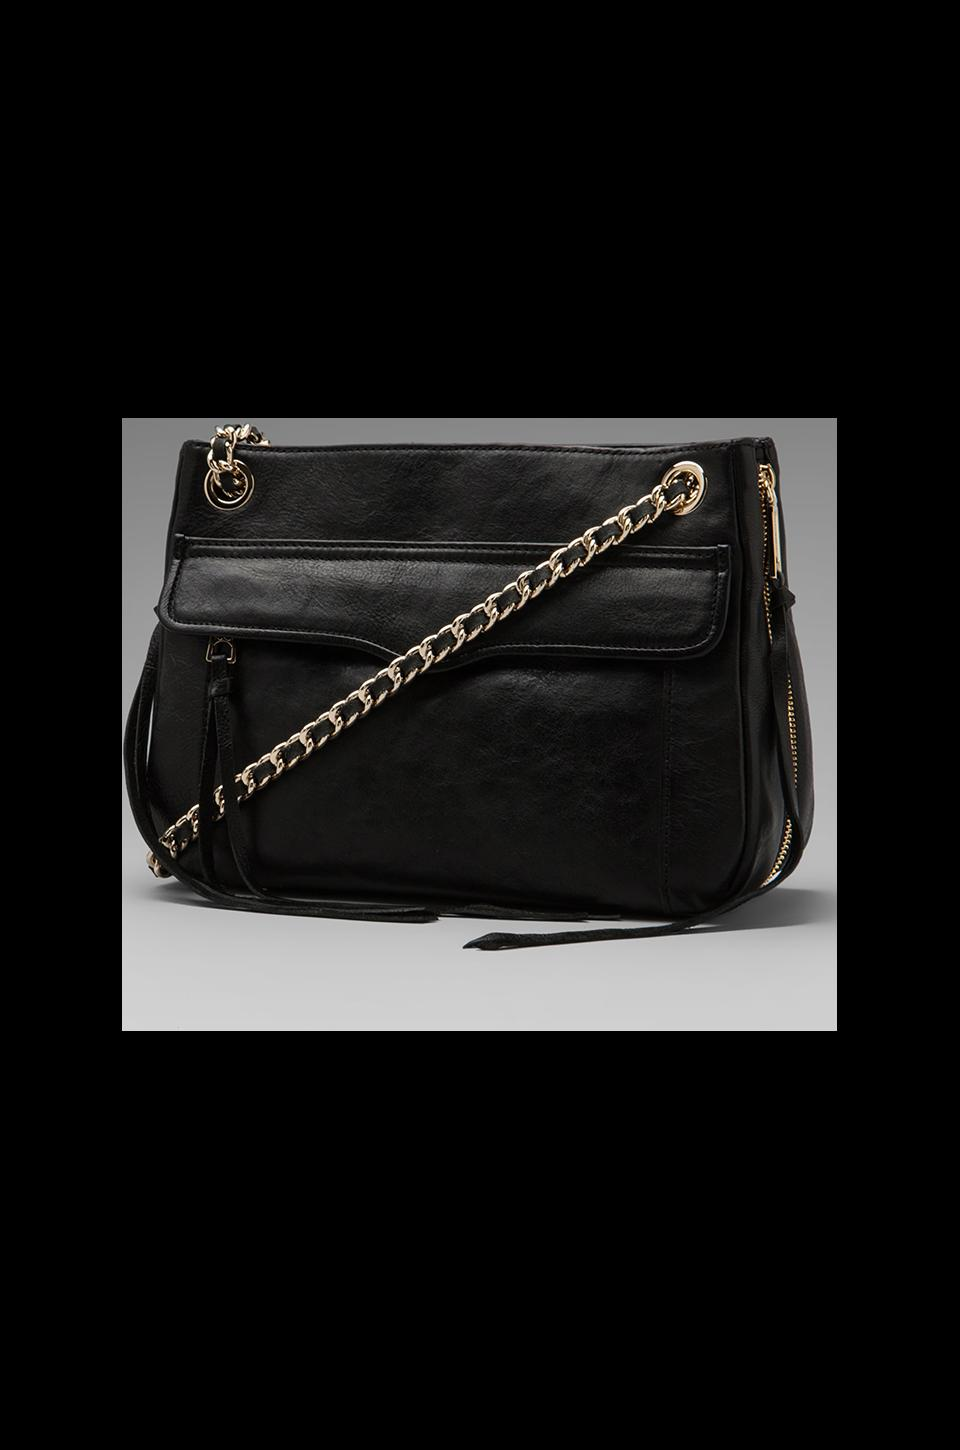 Rebecca Minkoff Swing Handbag in Black